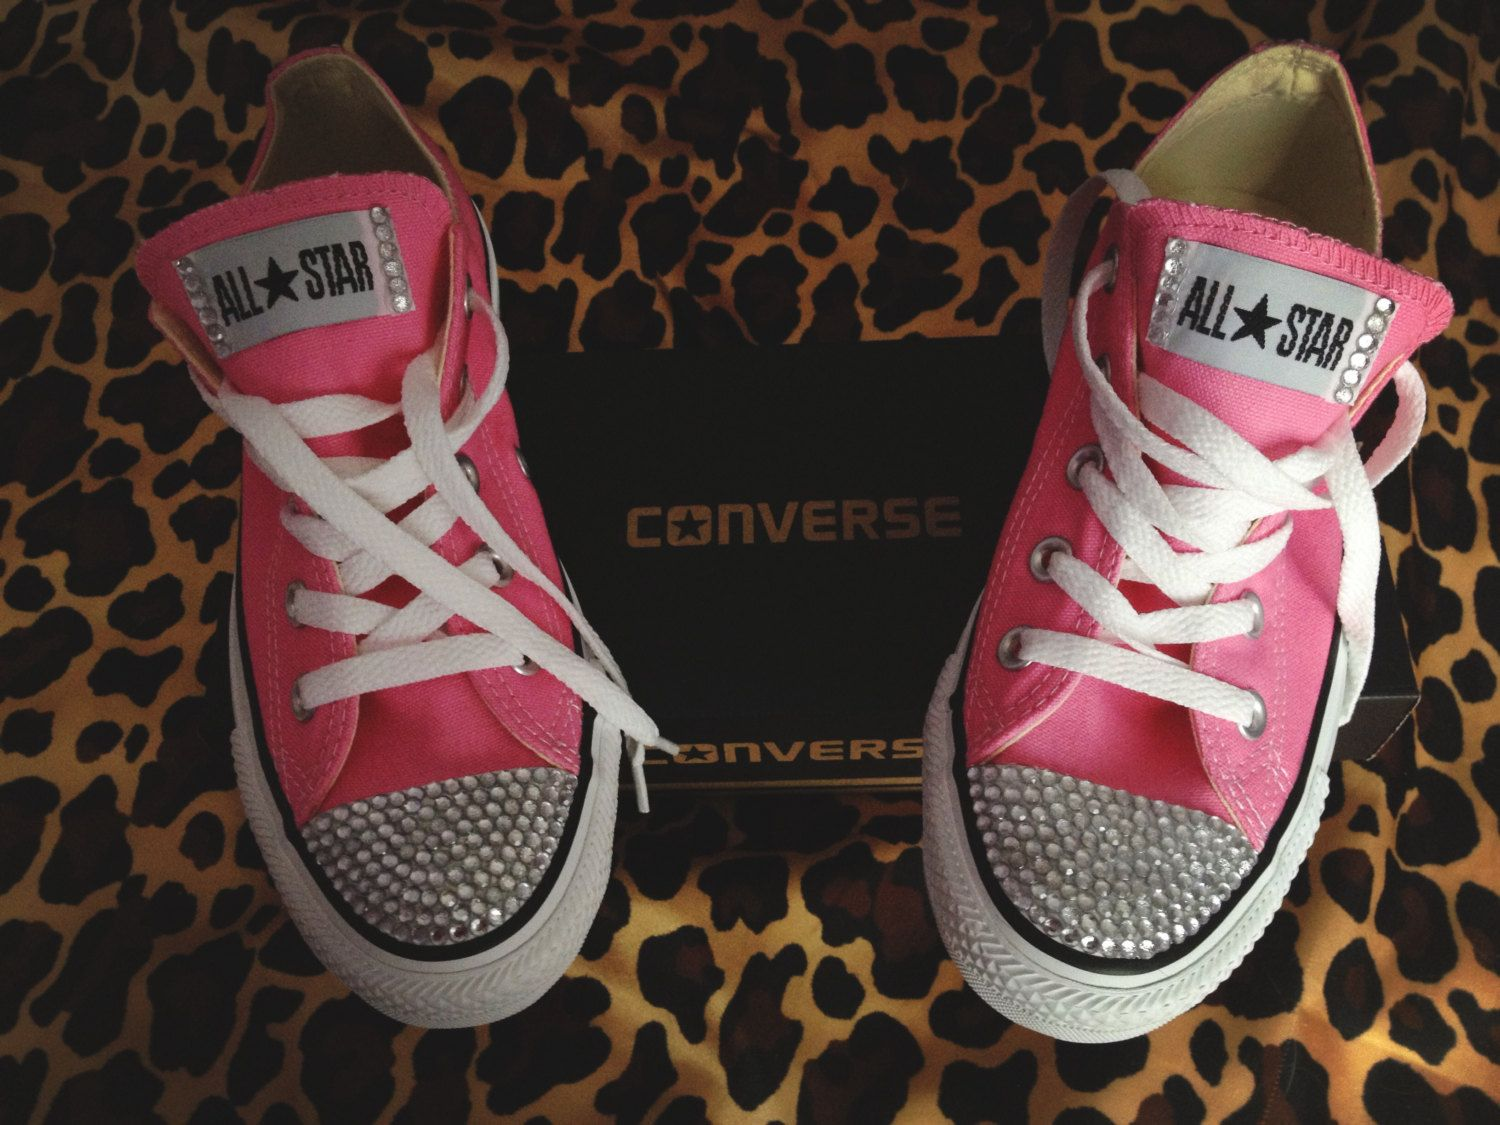 4809396016a75e Bling baby converse shoes - Myretrobaby.com. Pink Converse Custom ...